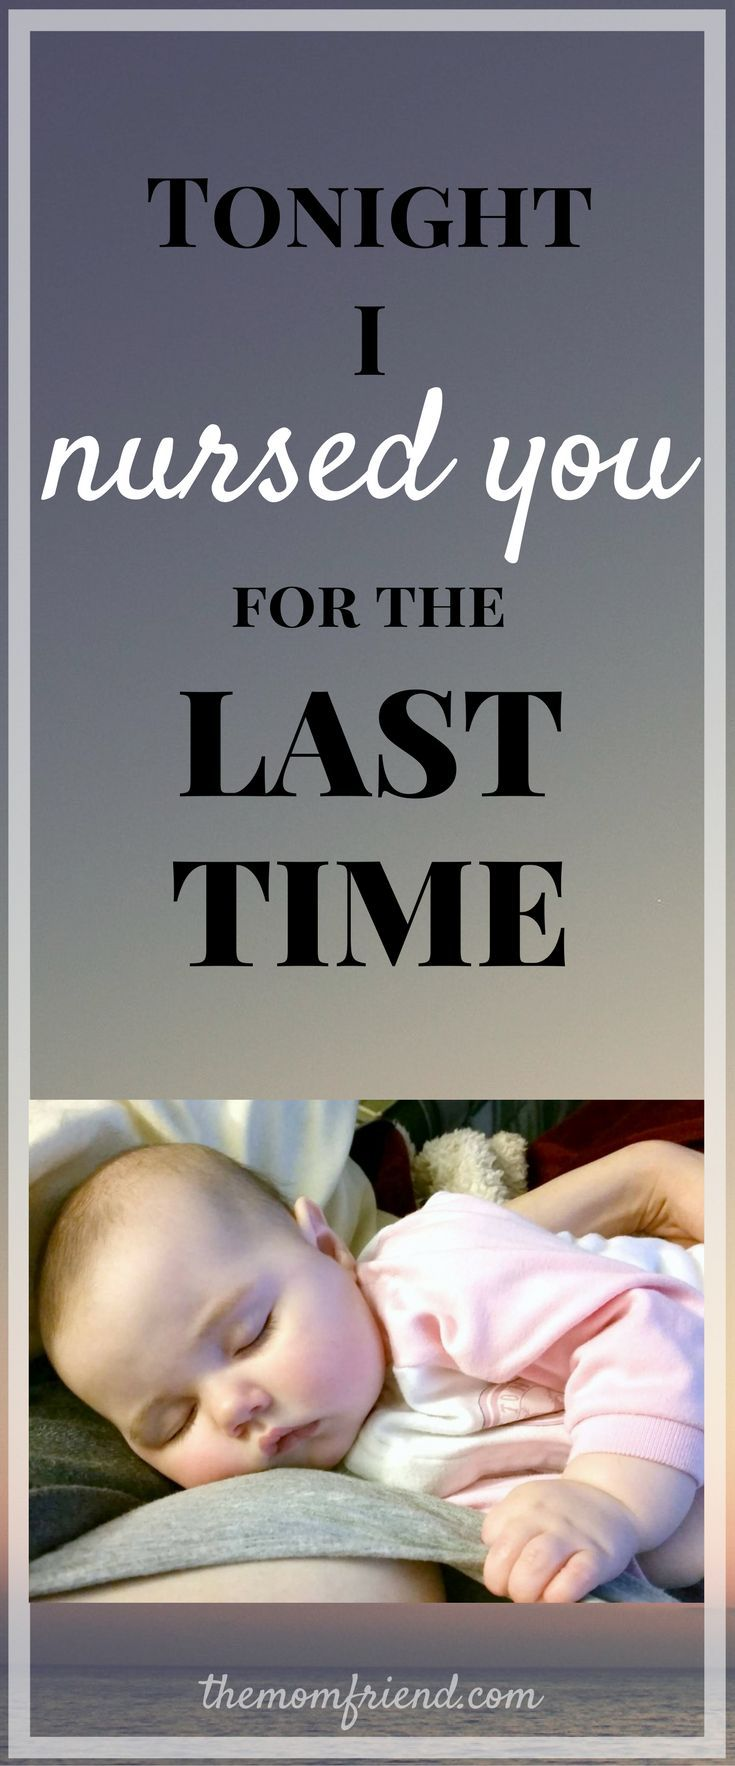 A *MUST READ* for moms! The end of the breastfeeding journey is so emotional. This mom shares her thoughts about weaning from breastfeeding in a letter to her daughter after their last time nursing | Nursing mom, breastfed baby, weaning, weaning a toddler, breastfeeding toddler | http://themomfriend.com